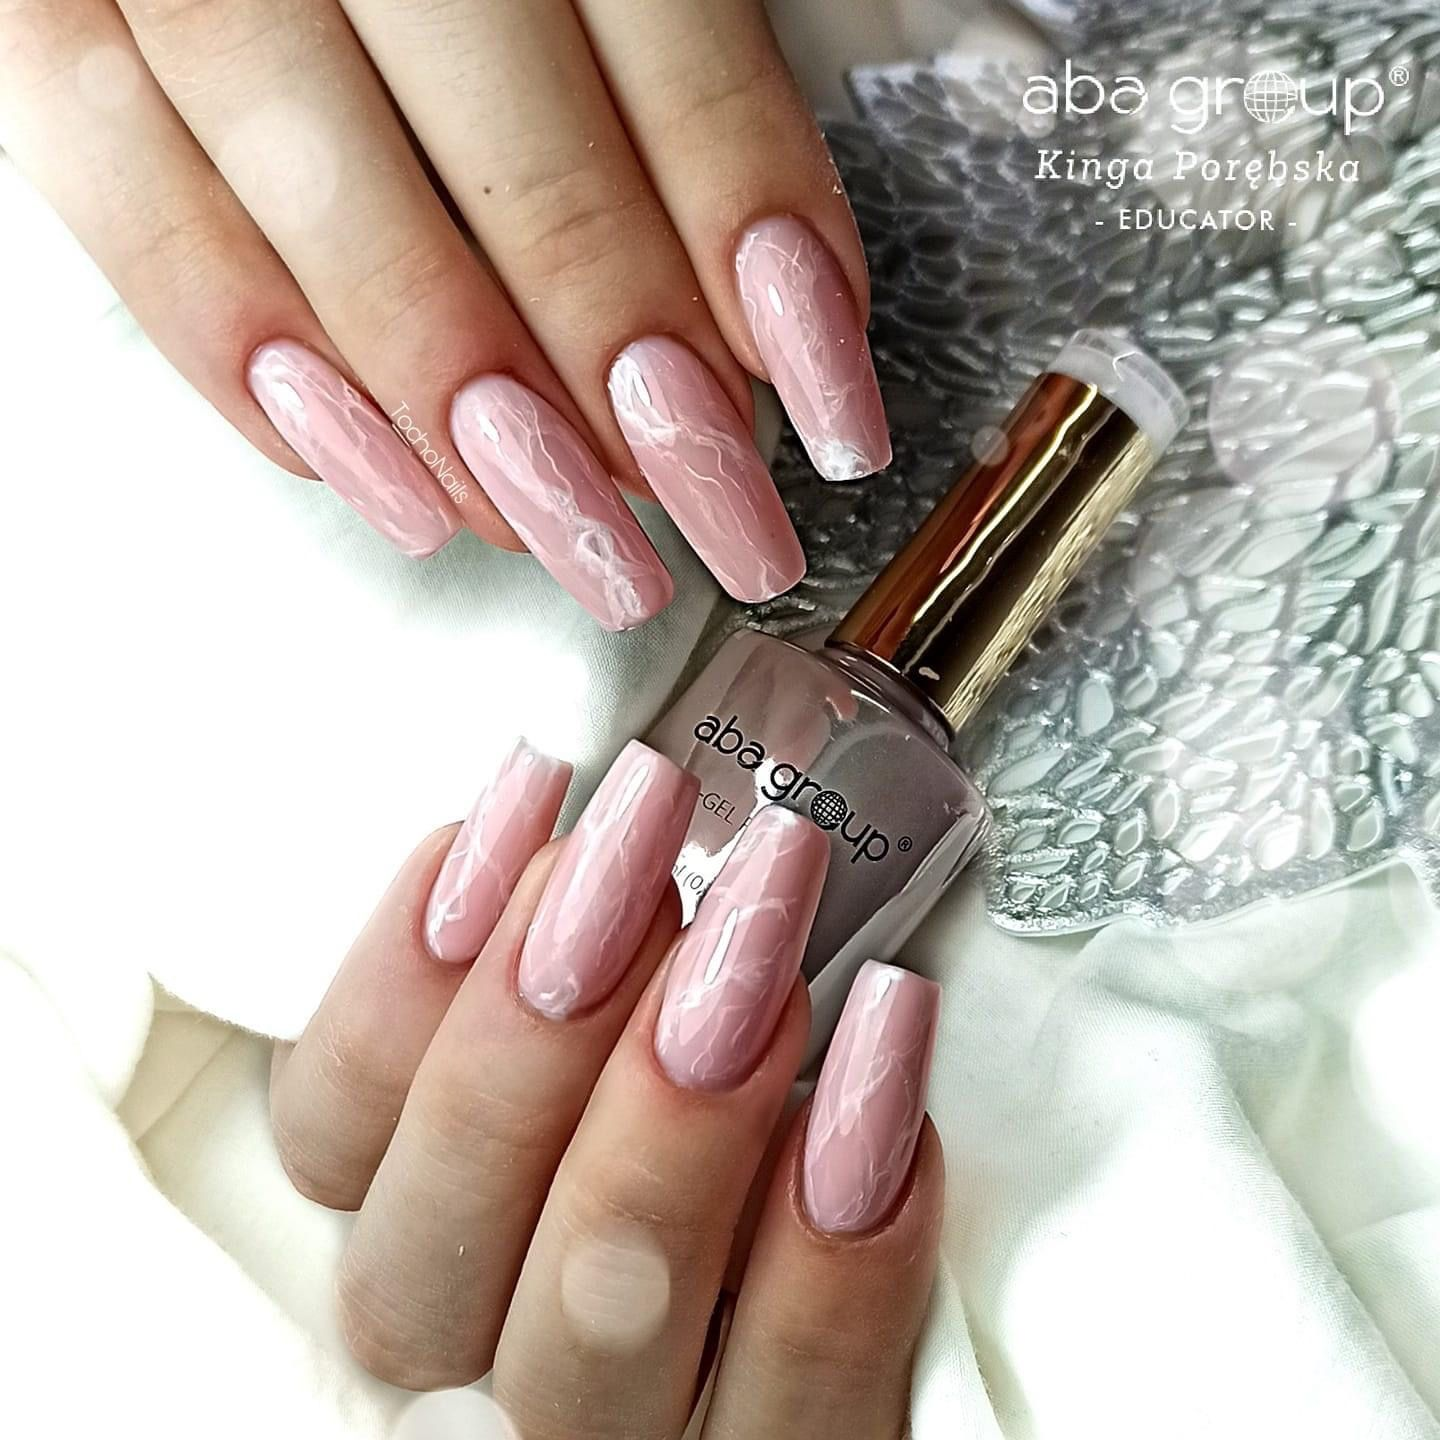 Pin By Olka Cieslak On Paznokcie Nails Beauty Leather